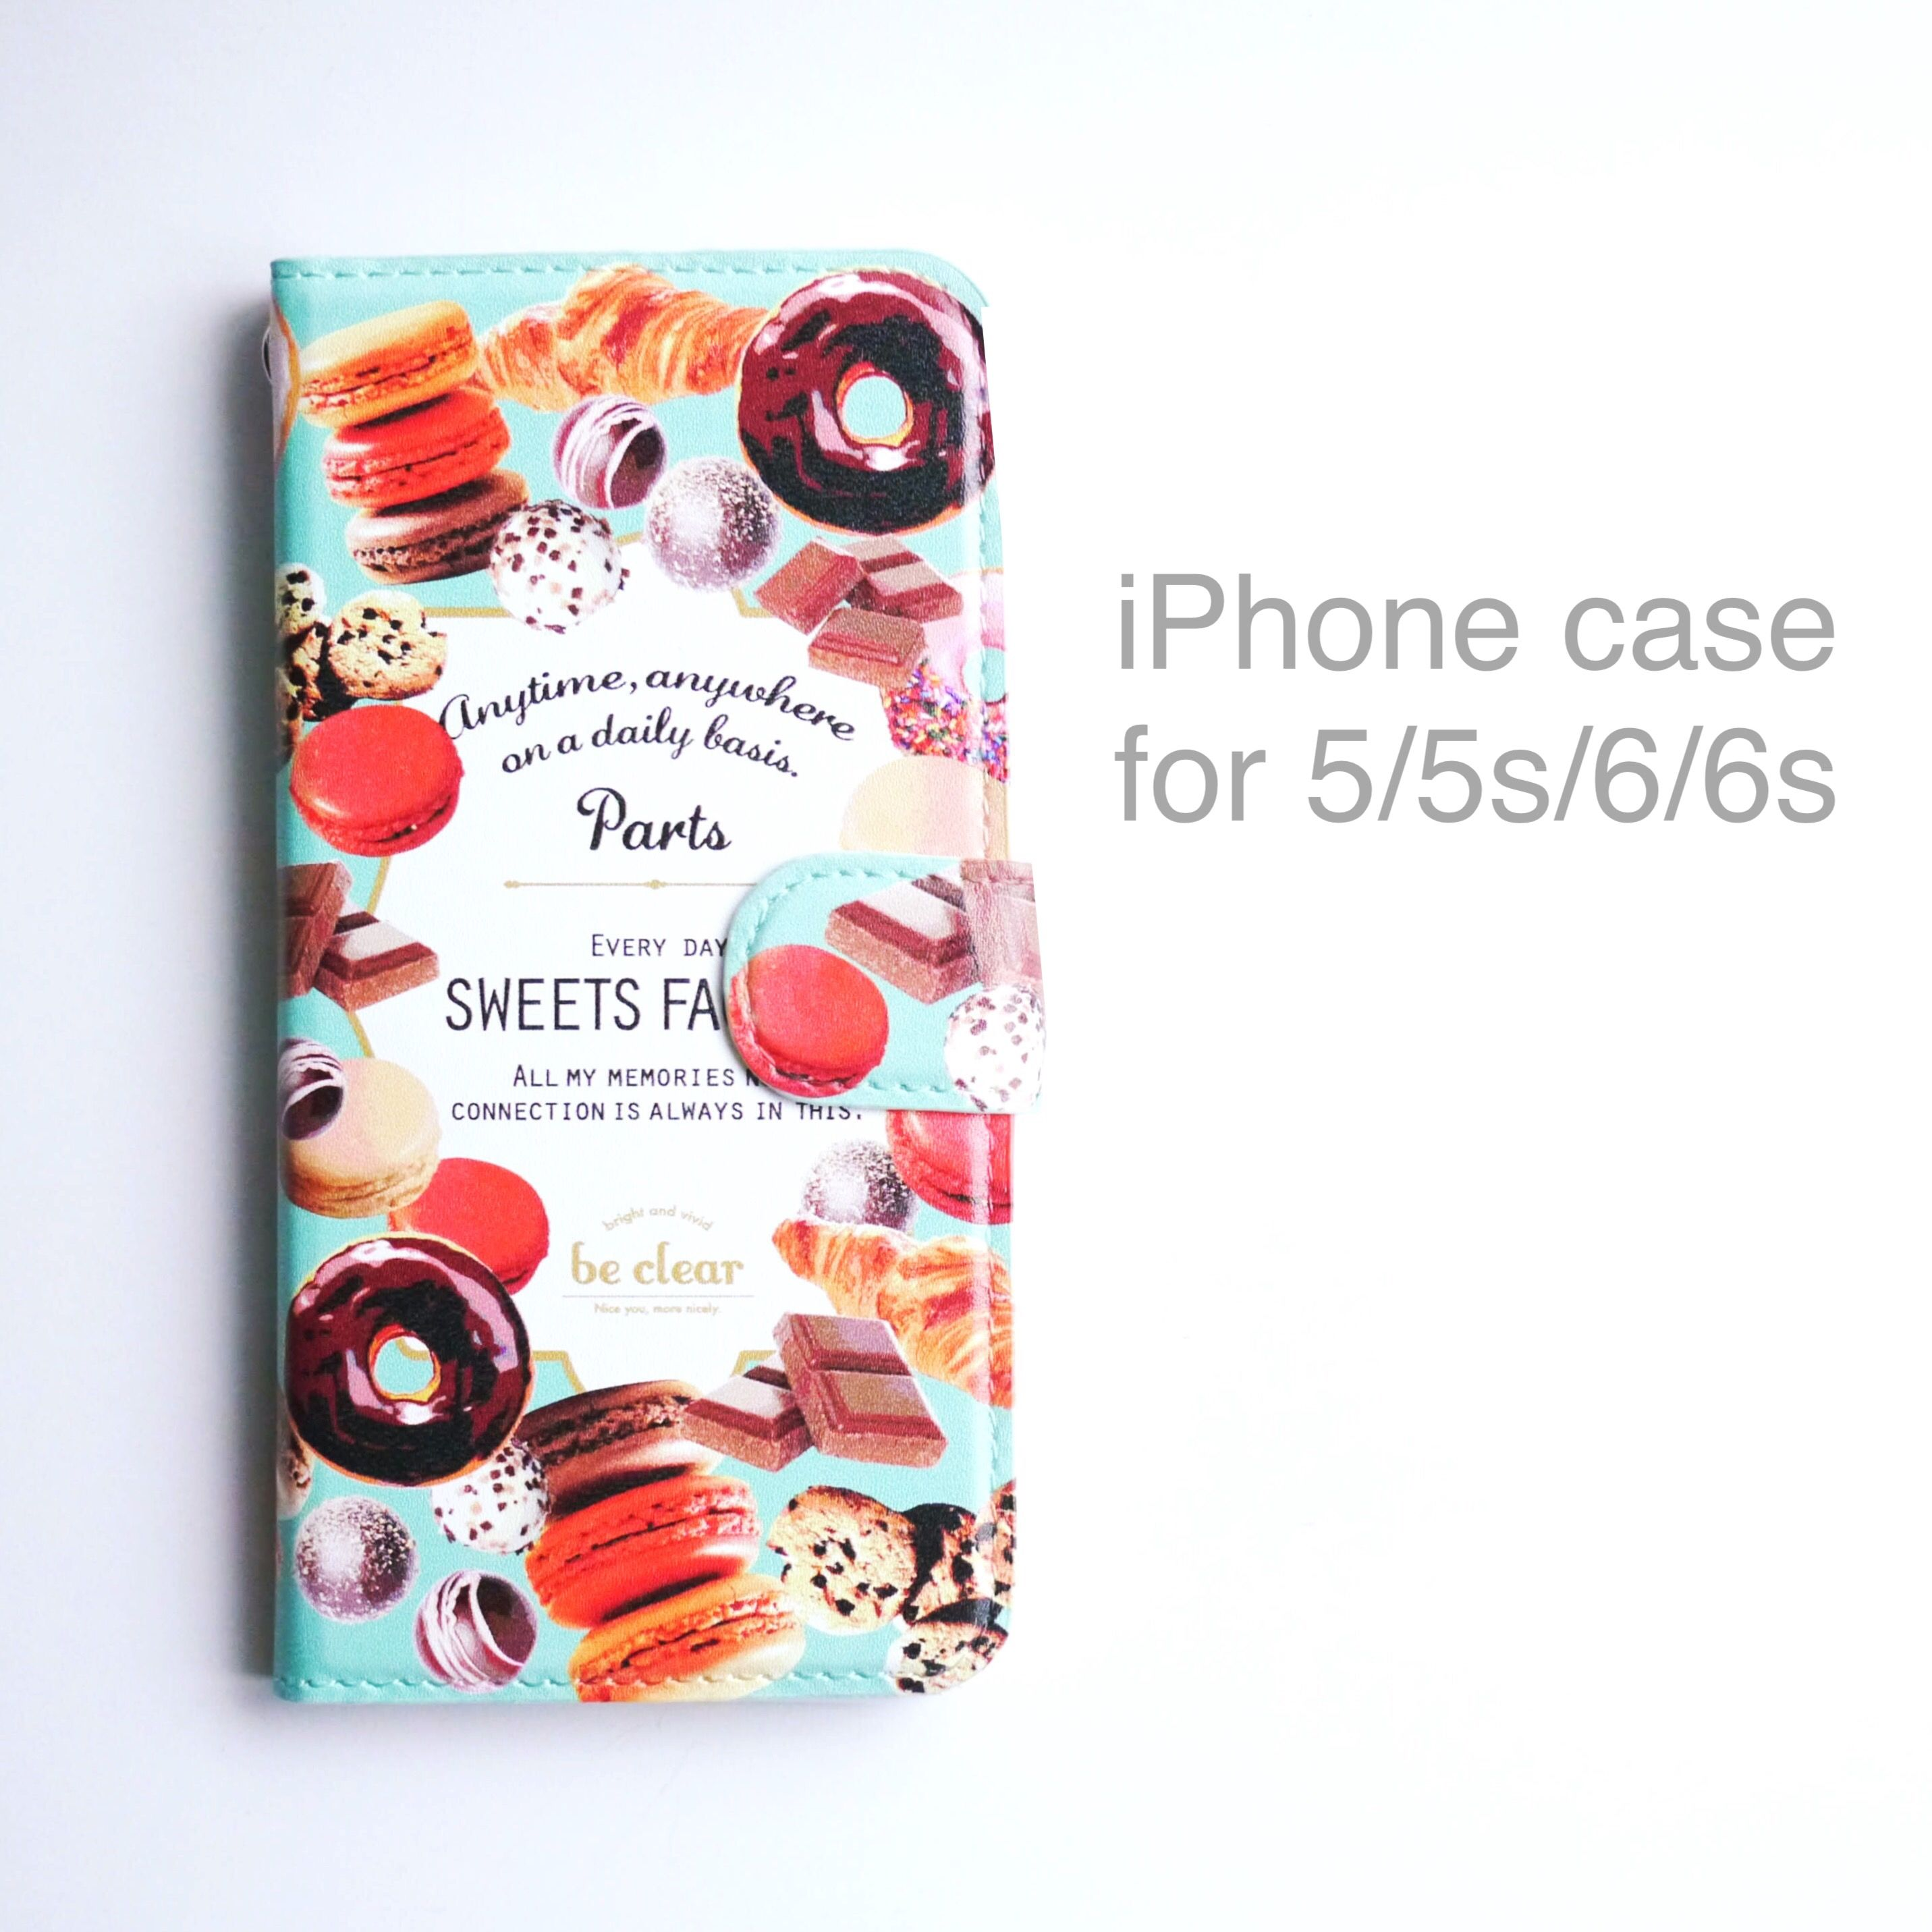 iPhone case (手帳型) for 5/5s/6/6s 【SWEETS FACTORY】